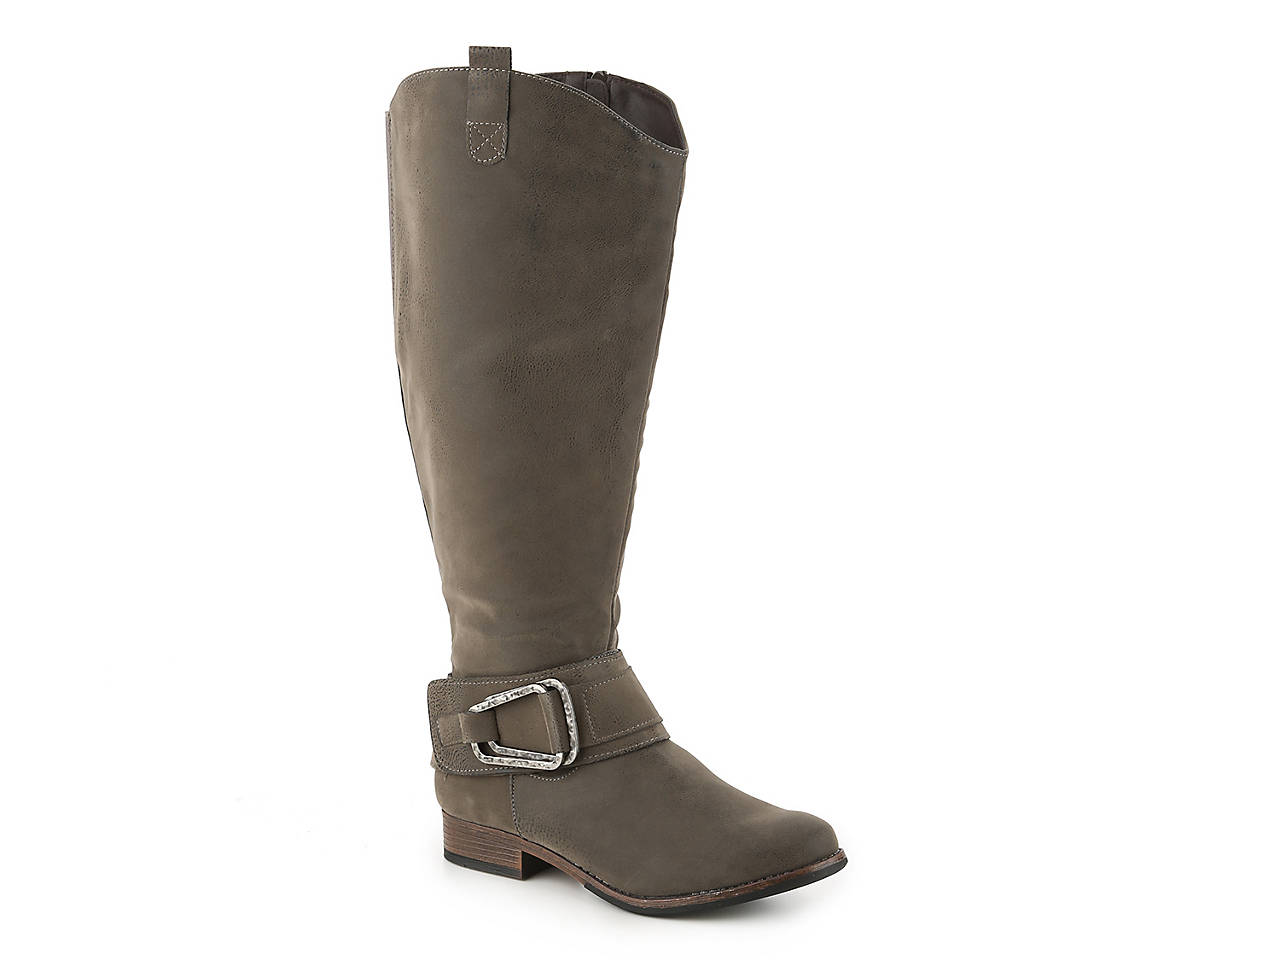 a511c278bc7 Levity Bonita Wide Calf Riding Boot Women s Shoes